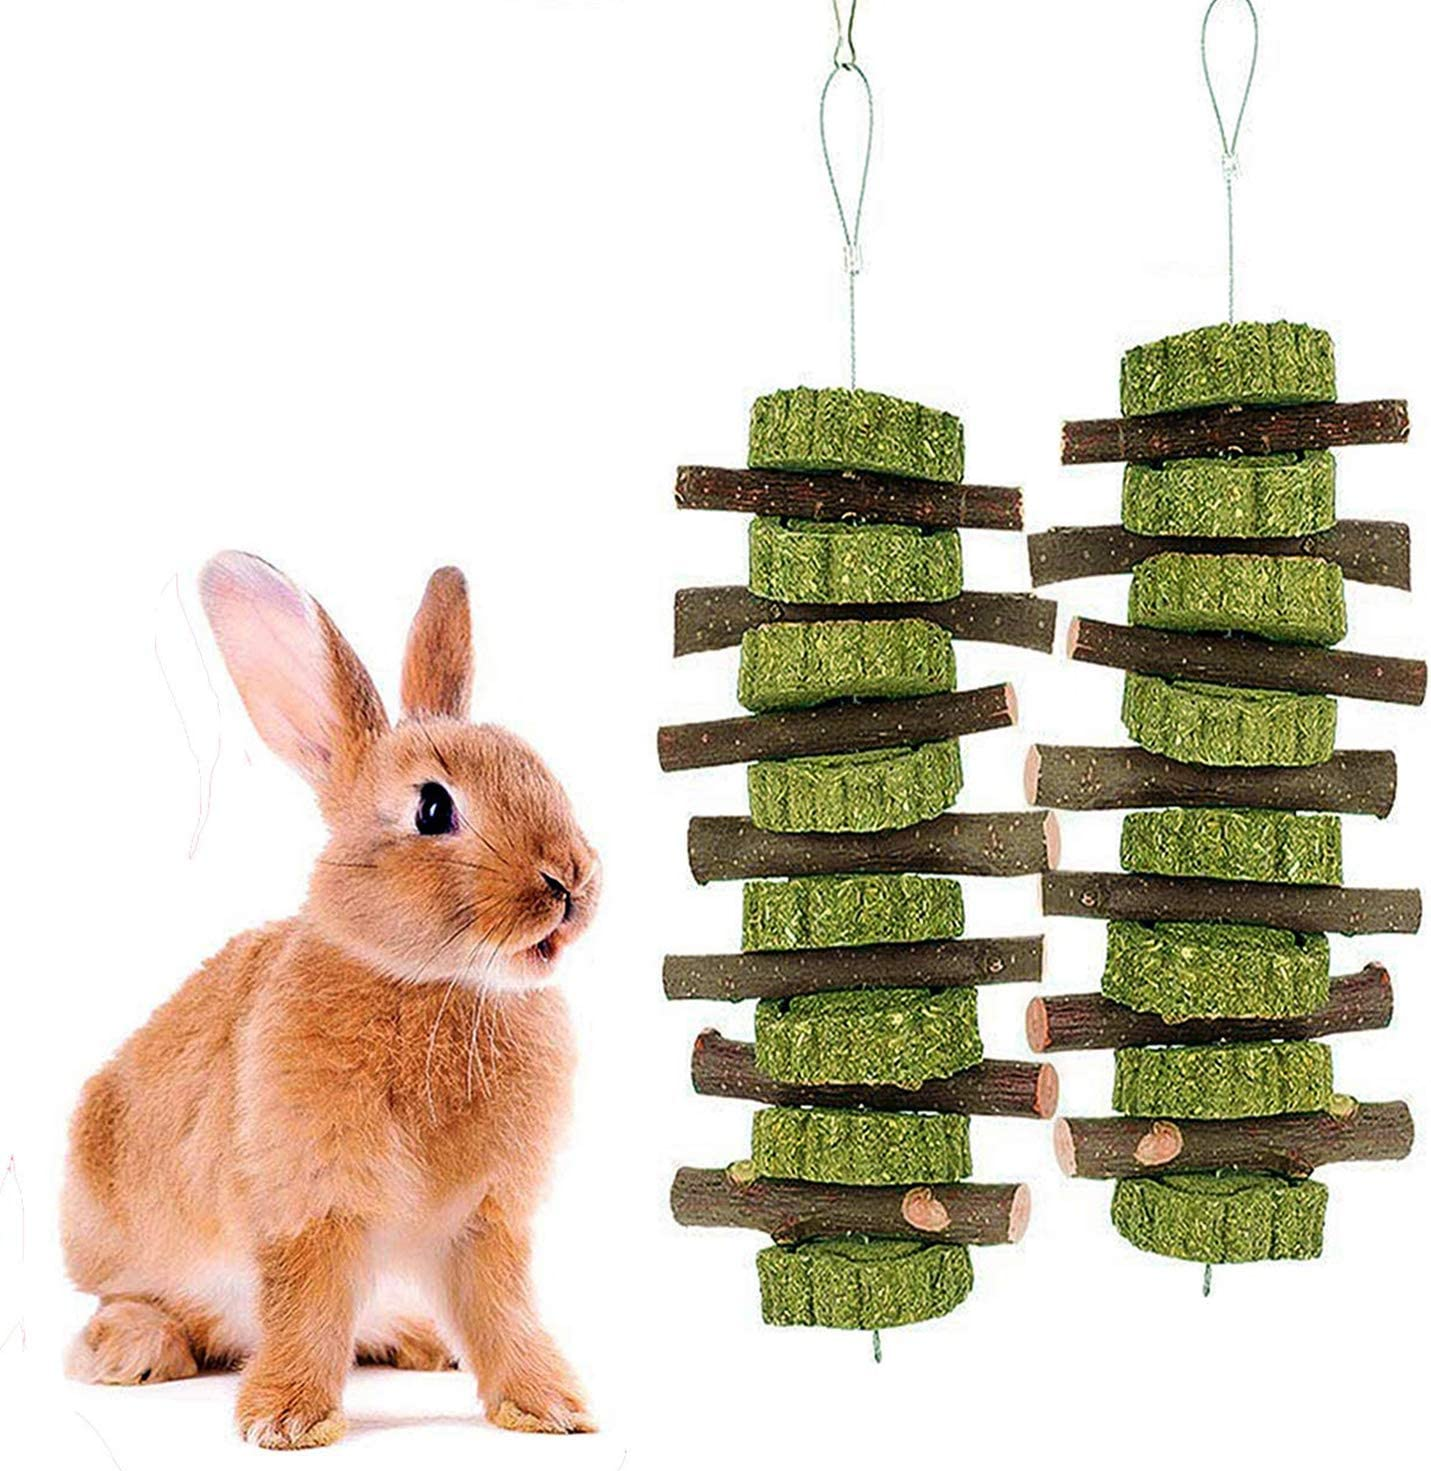 PINVNBY Bunny Chew Toys Apple Wood Sticks Natural Edible Grass Cake Pet Snacks Treats Molar Teeth Grinding Toy for Small Animals Rabbits Chinchilla Guinea Pigs Hamsters 2 PCS